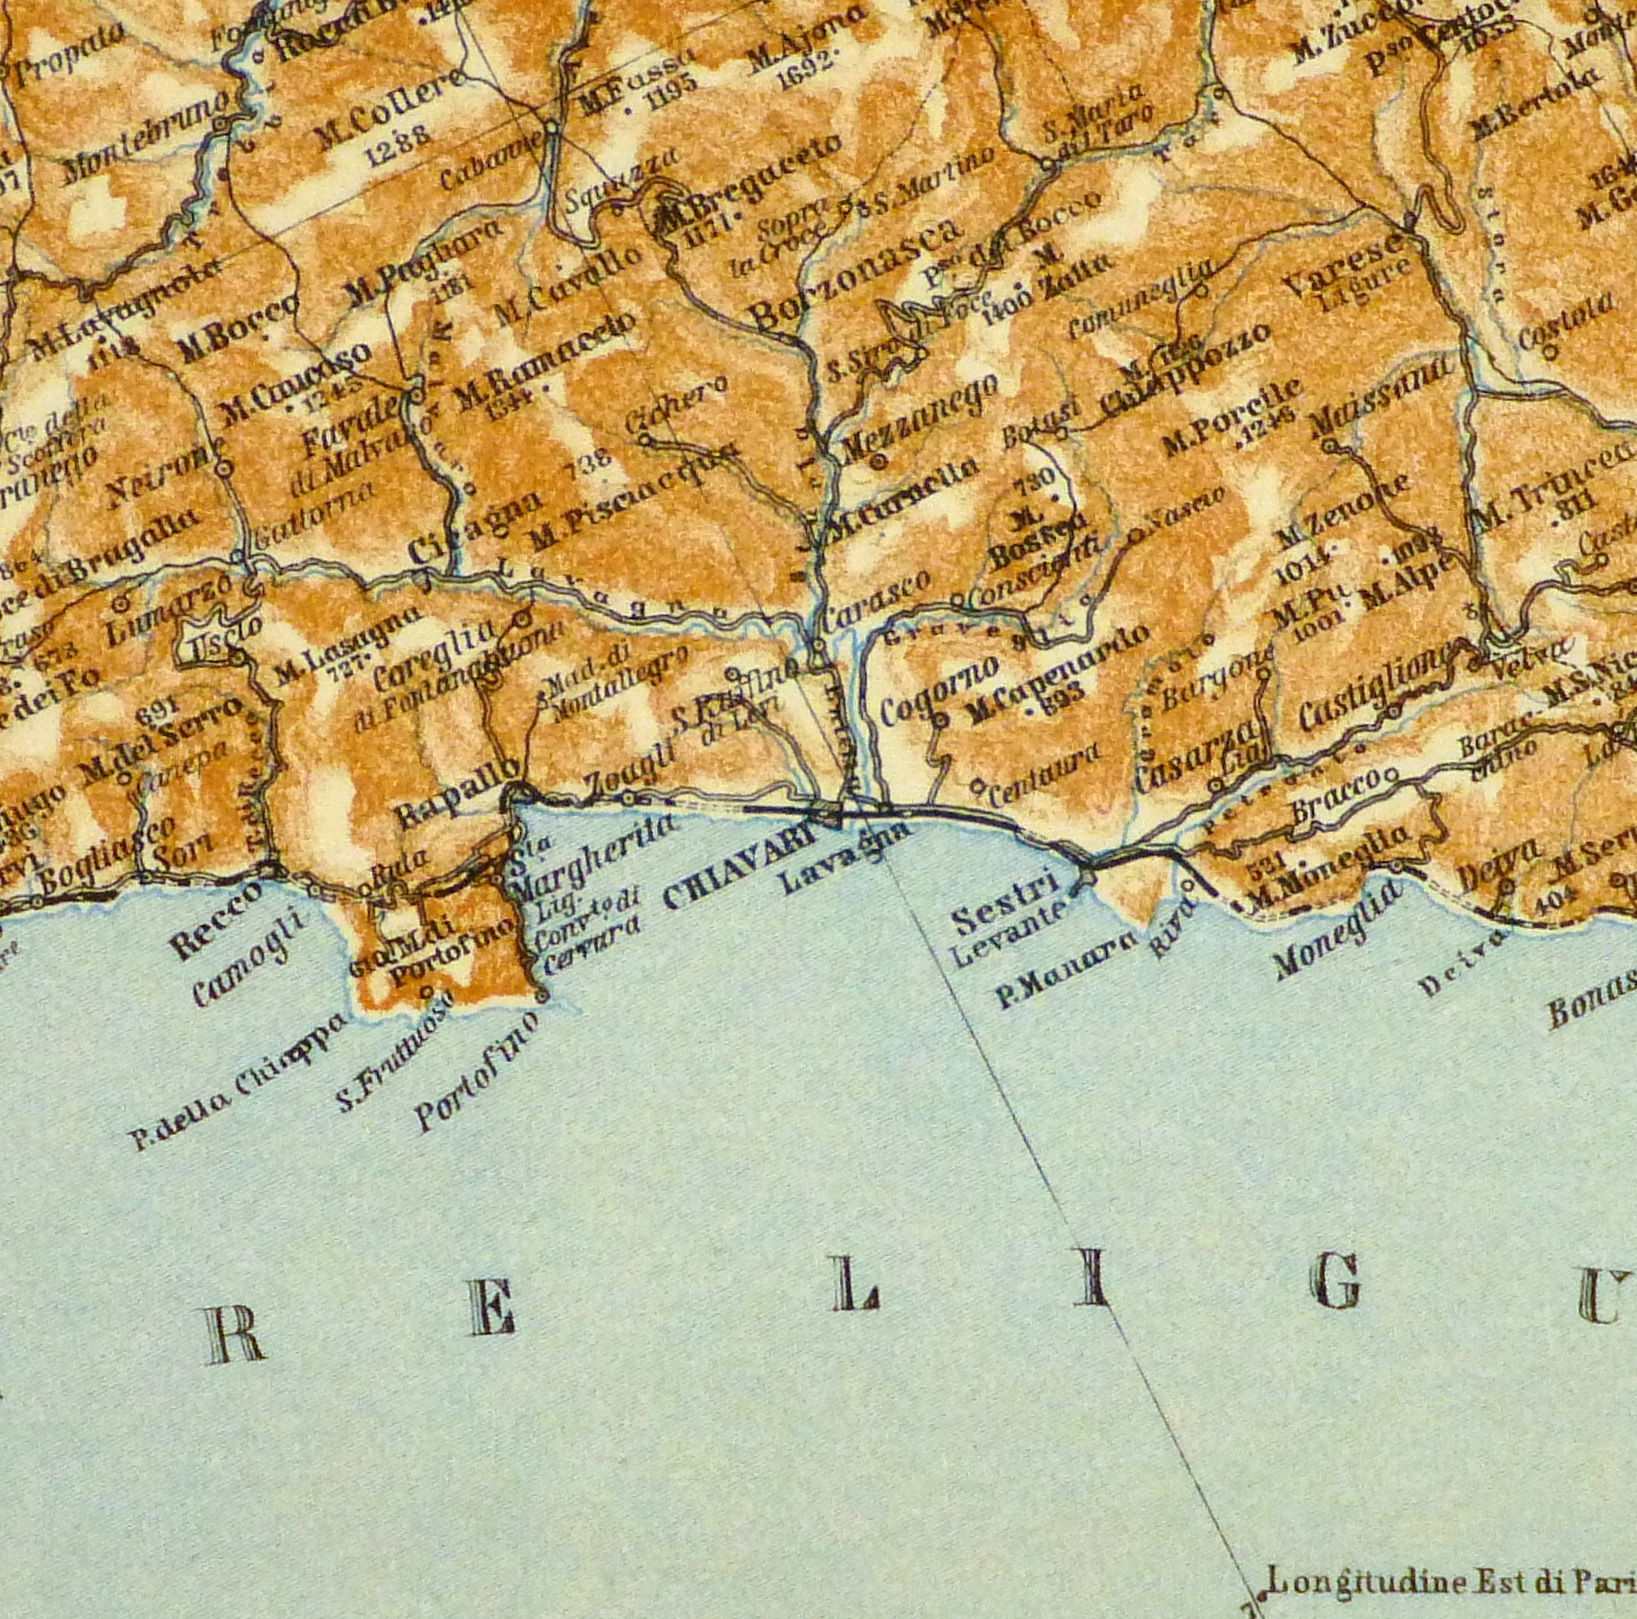 Genova & Spezia Map, 1928-detail-9343K